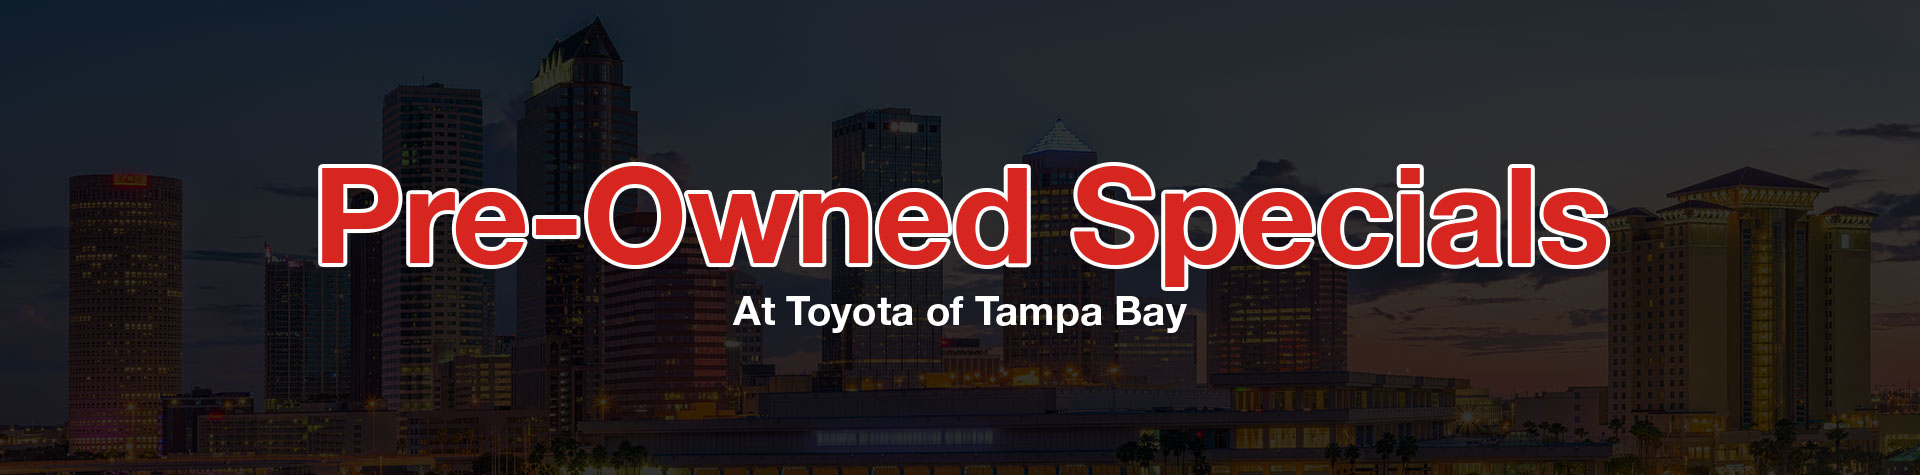 Pre-Owned Specials At Toyota of Tampa Bay